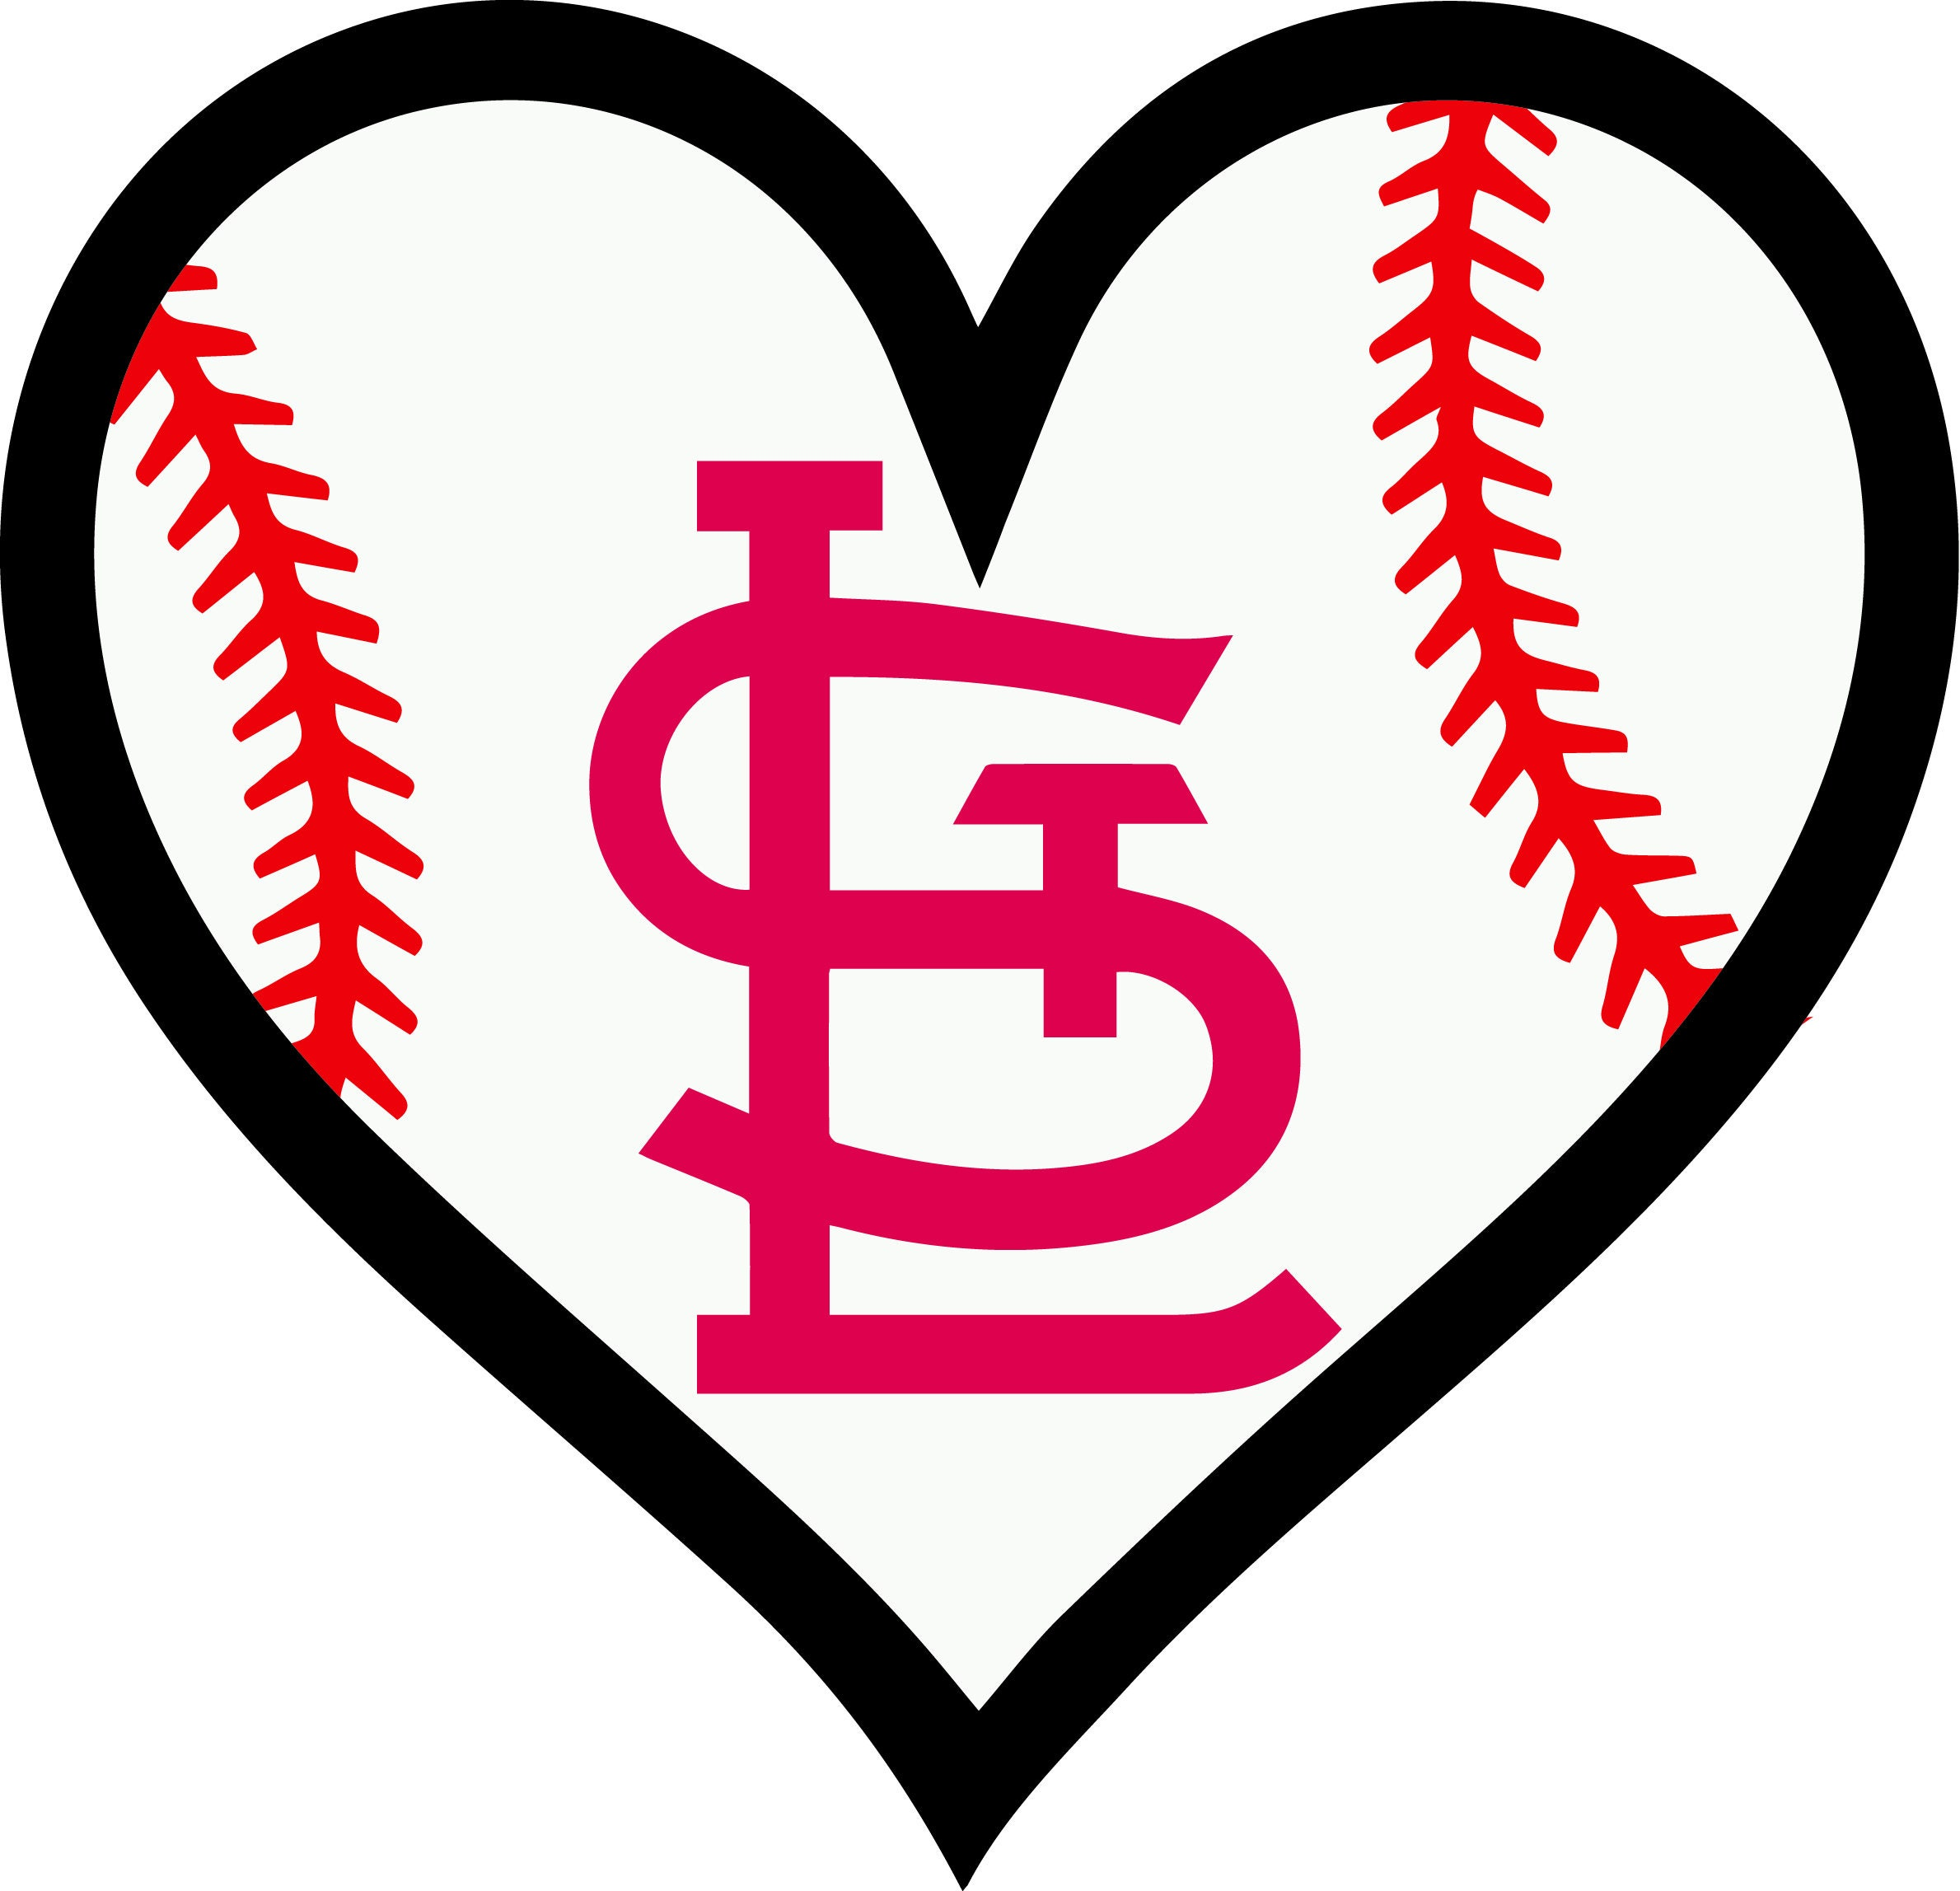 30 off st saint louis cardinals baseball l love heart decal etsy rh etsy com st louis cardinals clip art molina st louis cardinals clip art pennants